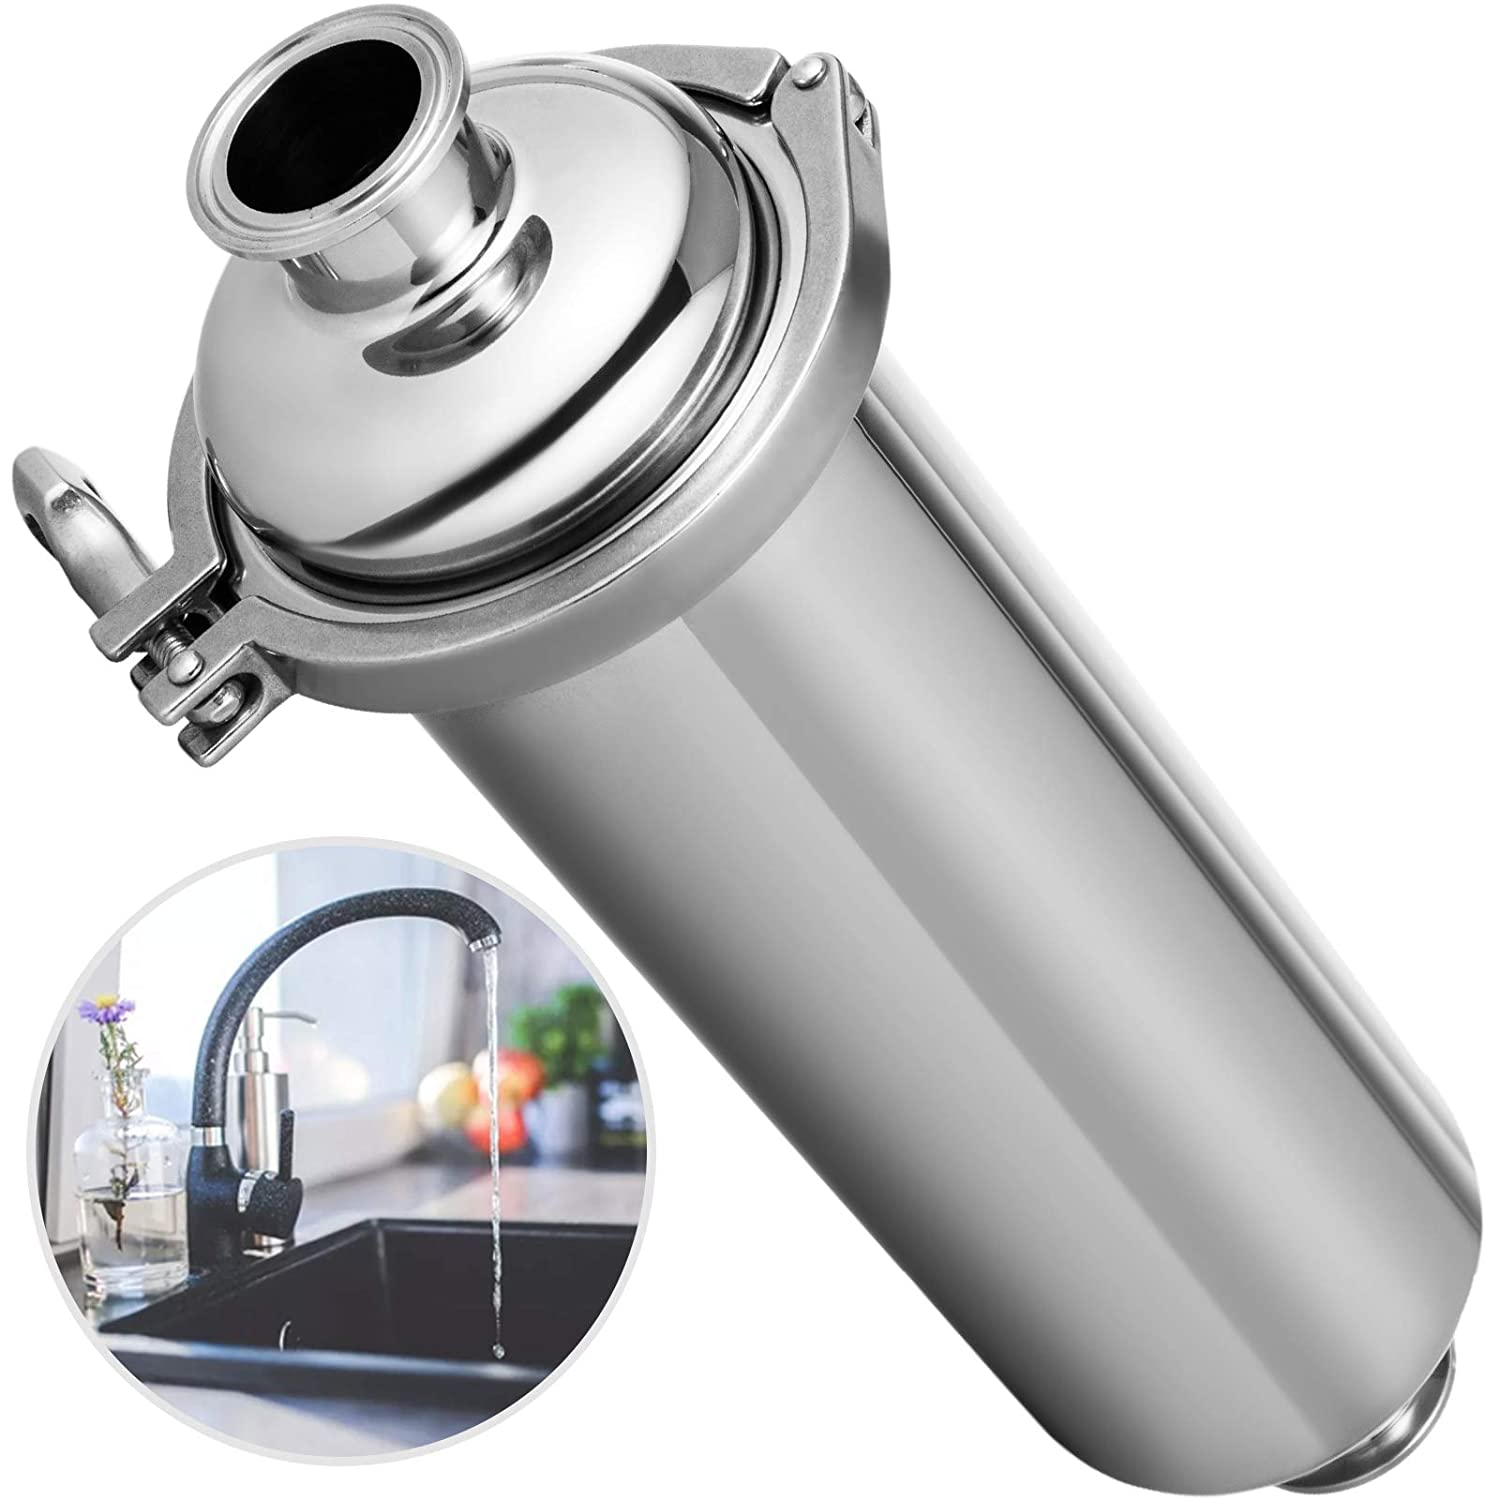 """Patiolife Inline Strainer SS304 Filter 1.5"""" Tri Clamp Filter with 100 Mesh Stainless Steel Screen & Stainless Steel Ferrule for Homebrewing & Water Straining & Milk Filtering"""